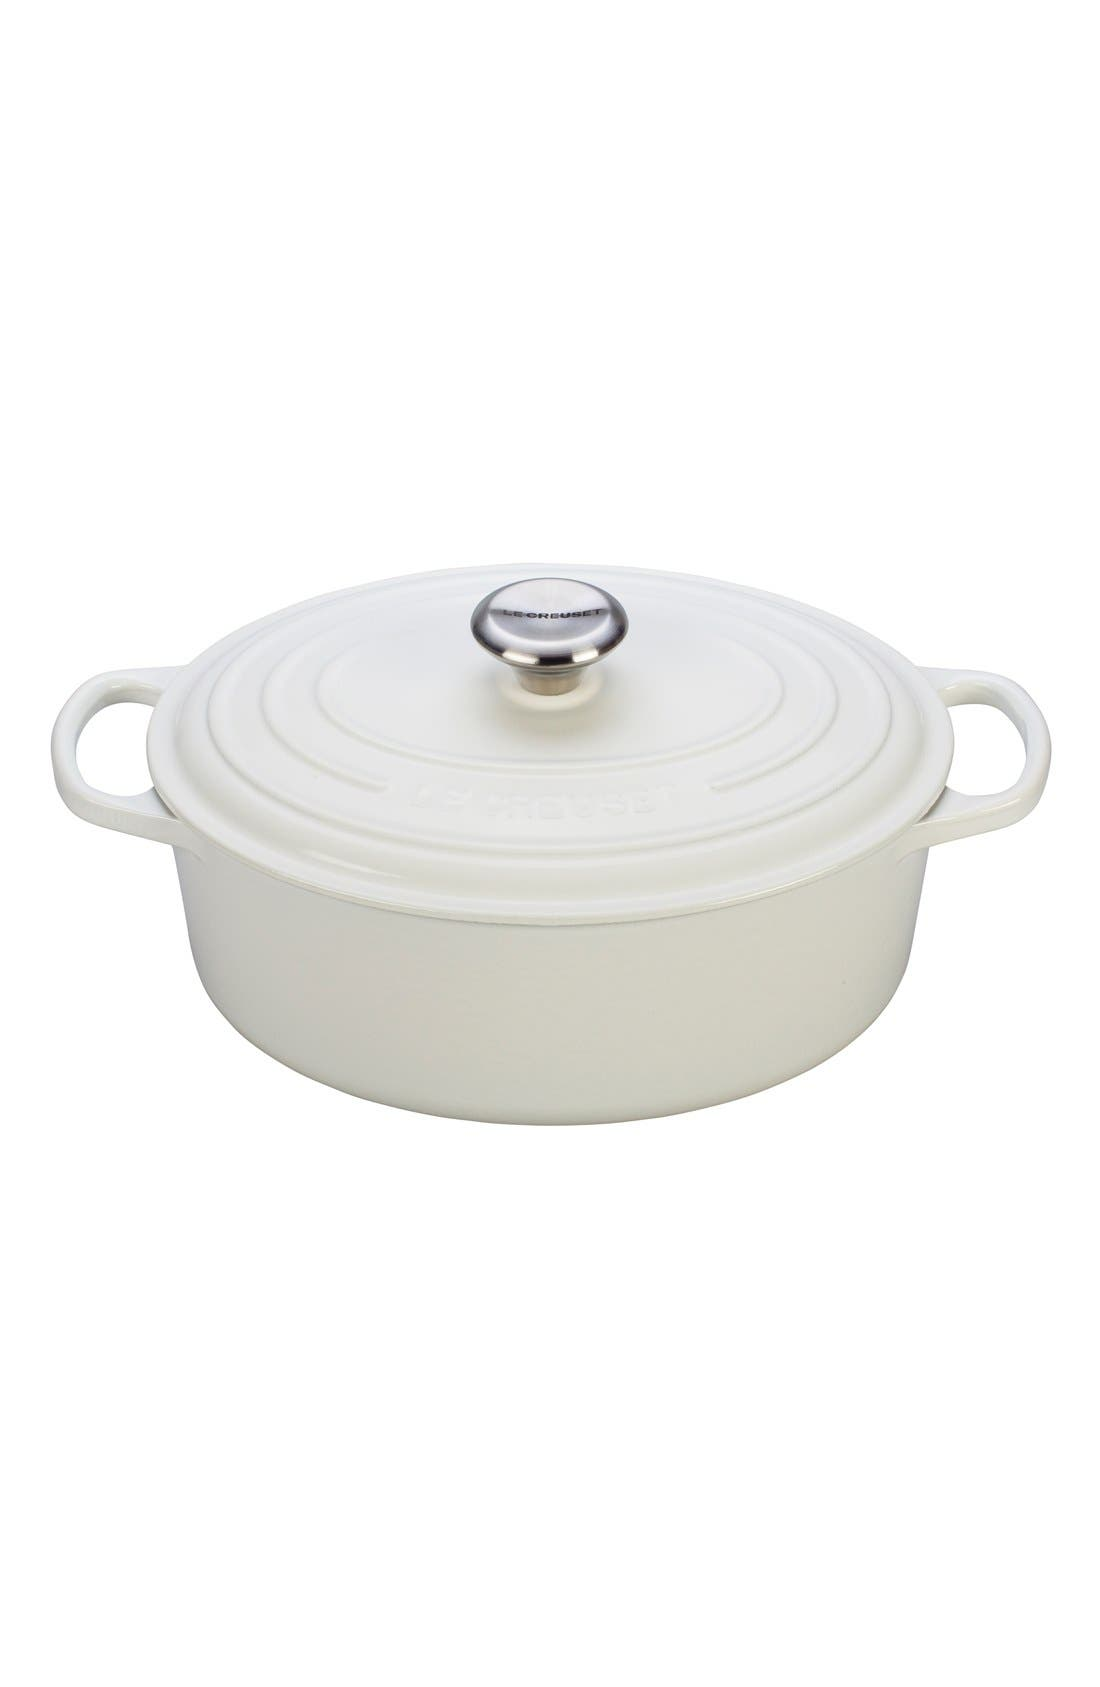 Signature 5 Quart Oval Enamel Cast Iron French/Dutch Oven, Main, color, WHITE